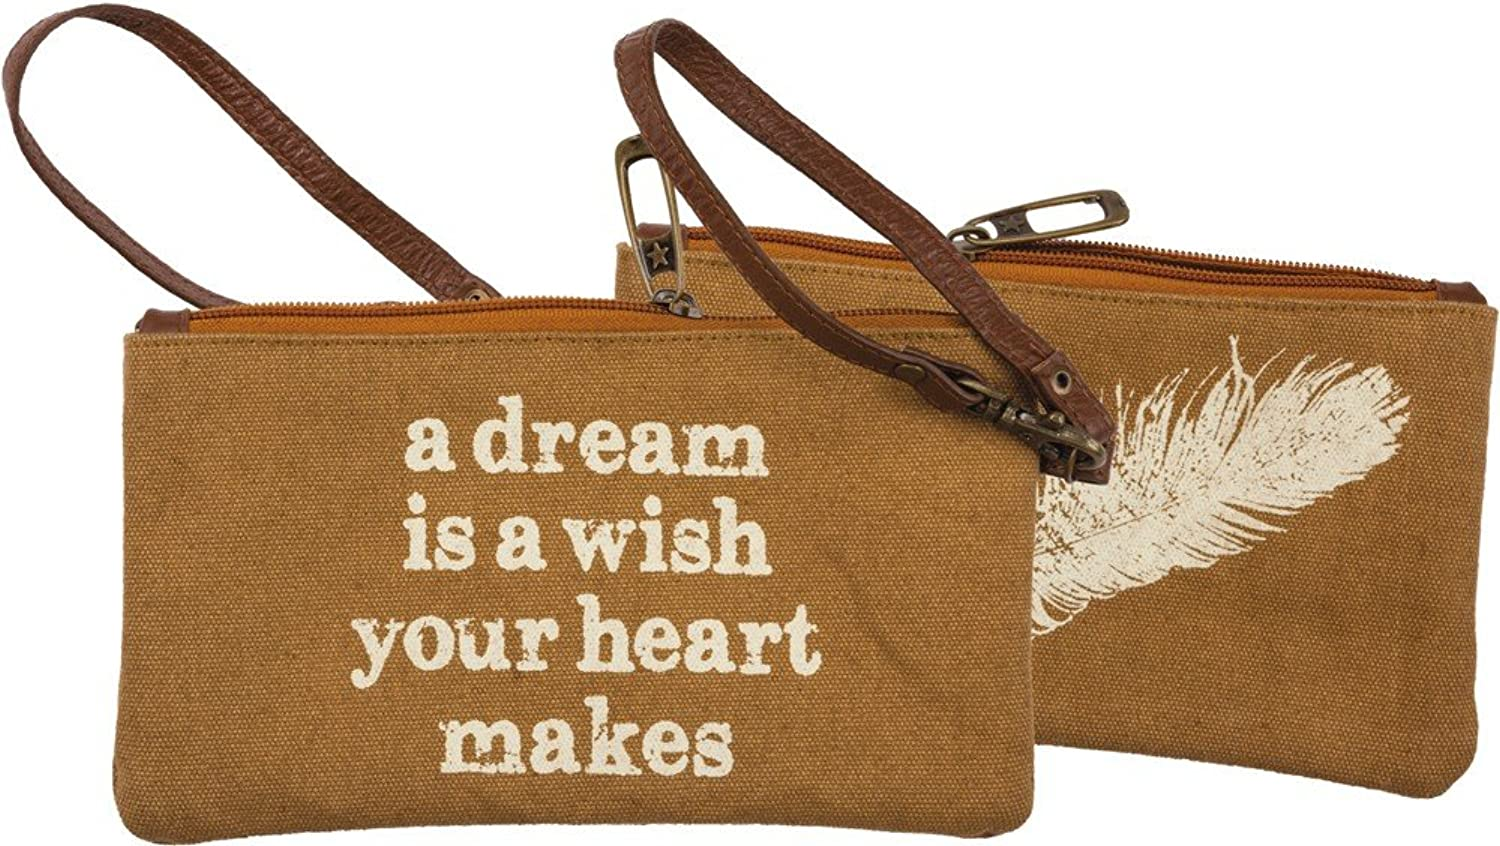 Canvas Wristlet with Leather Strap  A Dream is a wish your heart makes  Change Purse with Feather Graphic